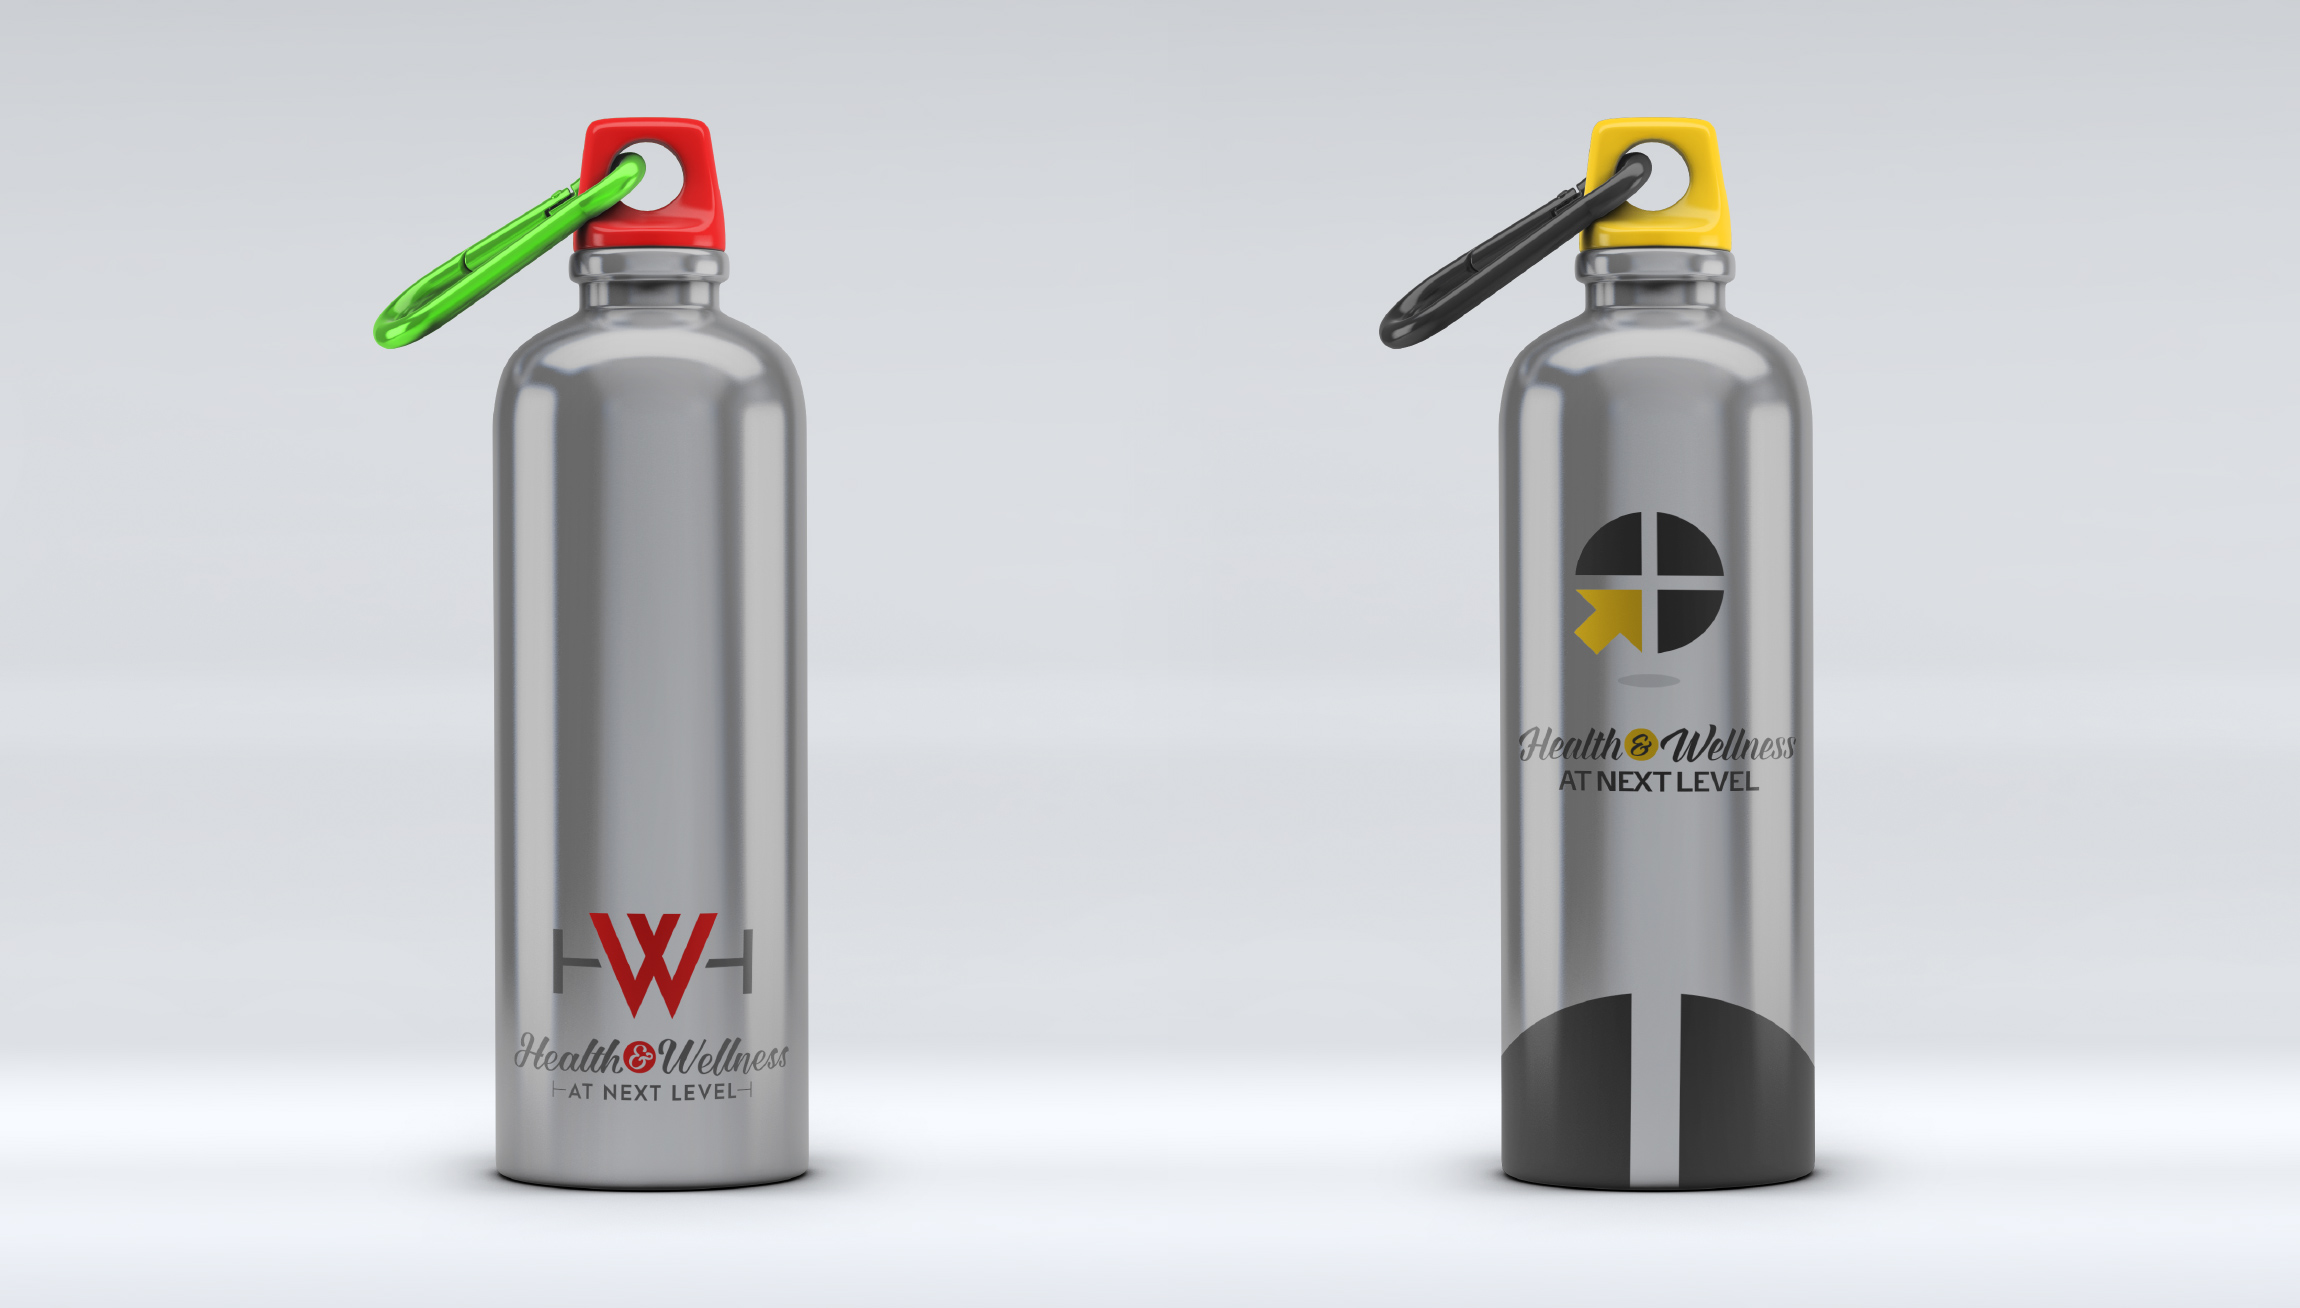 Printing and Design - Double Walled Sports Bottle Mockups for Health and Wellness at Next Level